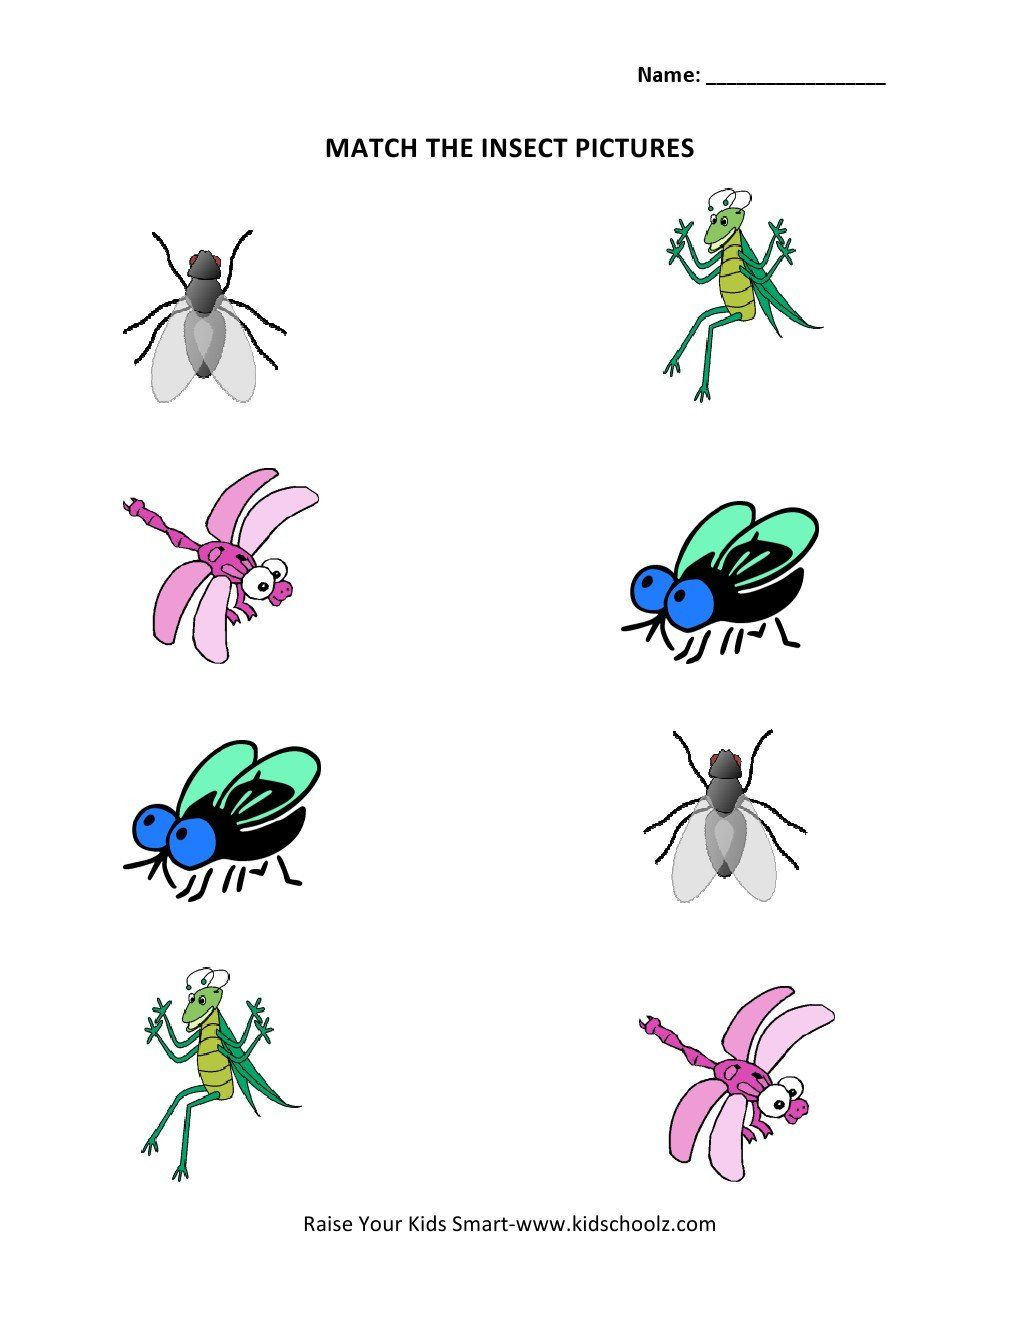 Insects Worksheets For Kindergarten Insect Worksheets For Kindergarten Bugs And Insects Theme In 2020 Insects Theme Kindergarten Bugs Kindergarten Worksheets